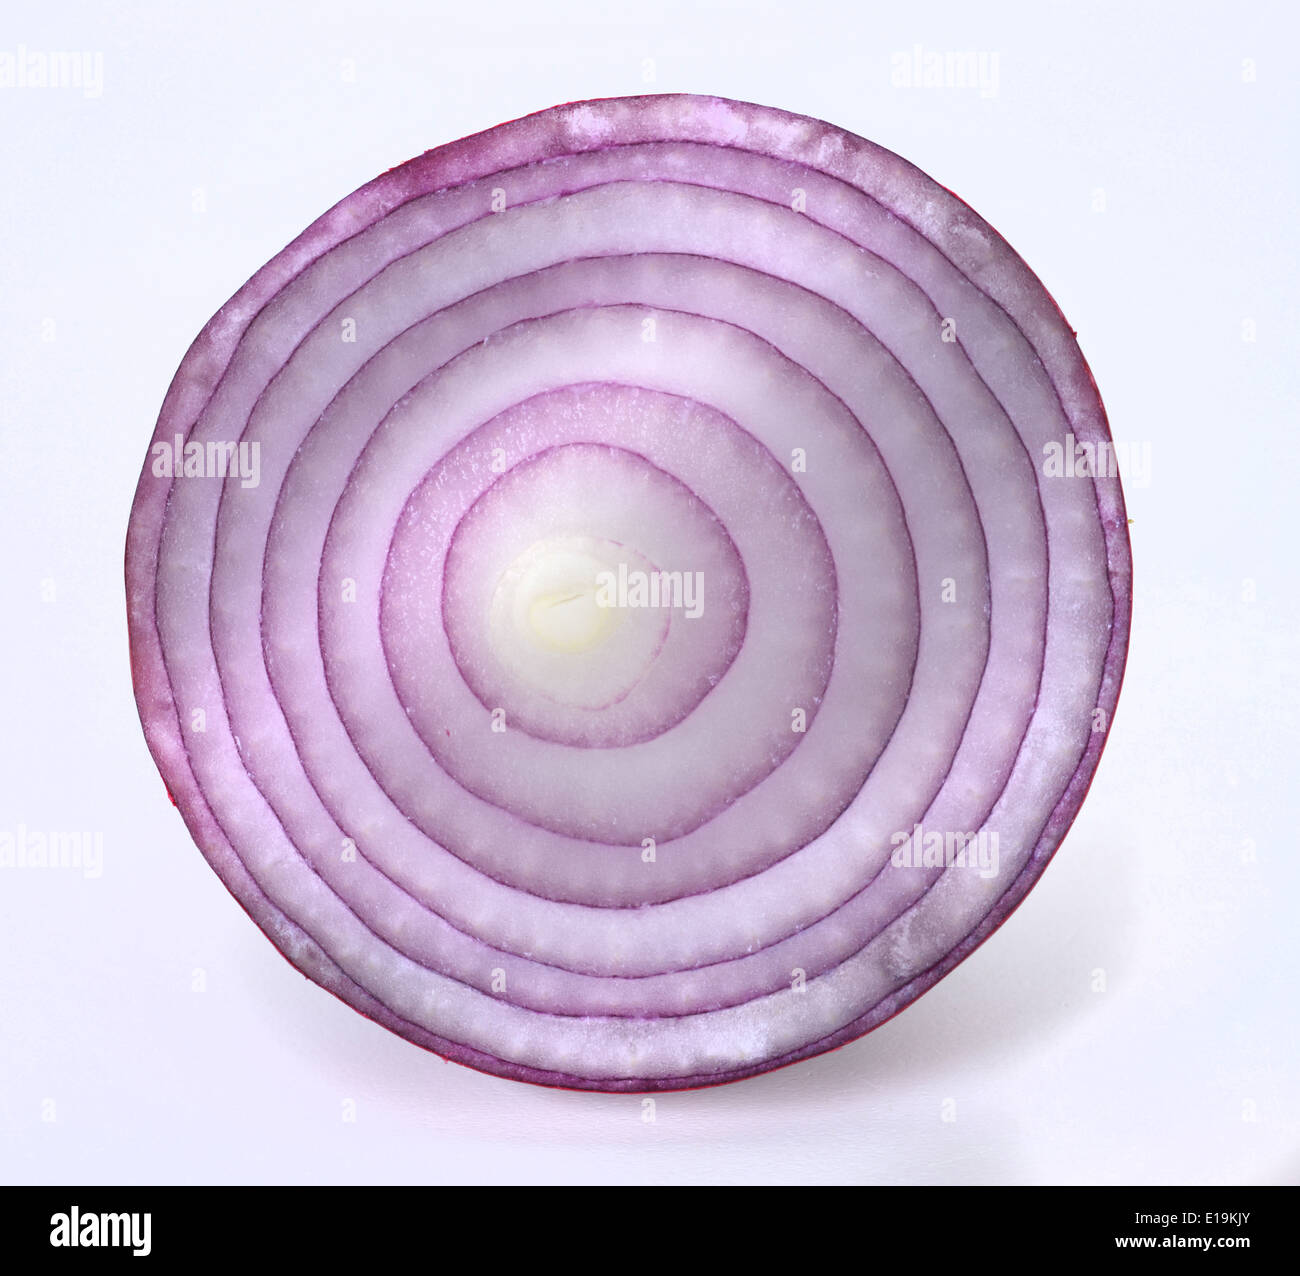 Rote Küchenzwiebel Zwiebel Stock Photos Zwiebel Stock Images Alamy